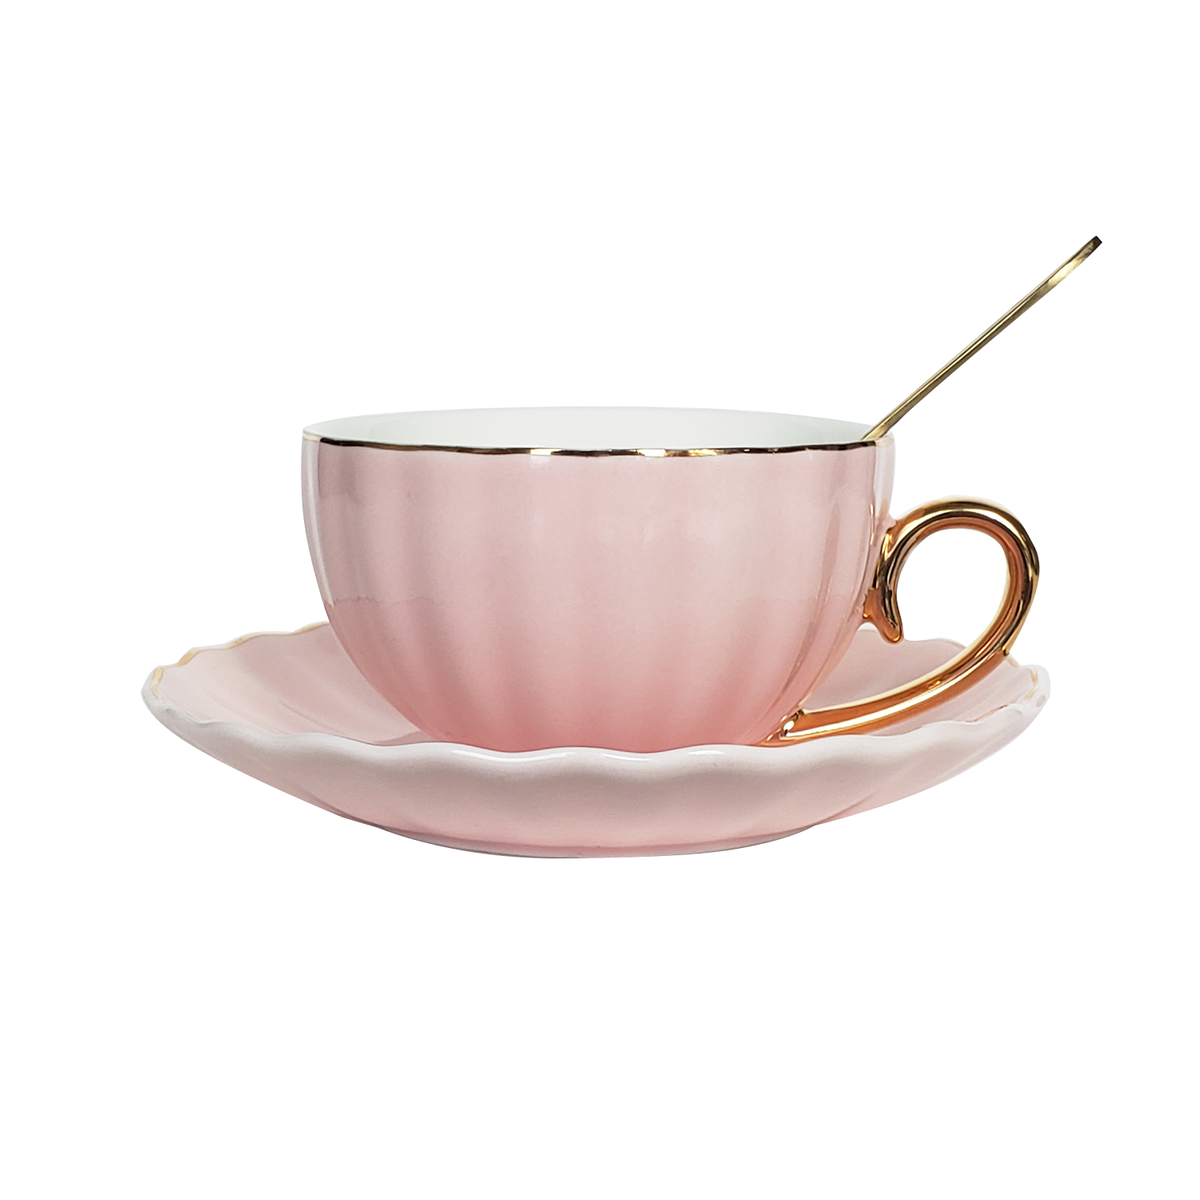 Image of Flamingo Pink Teacup Set for 2